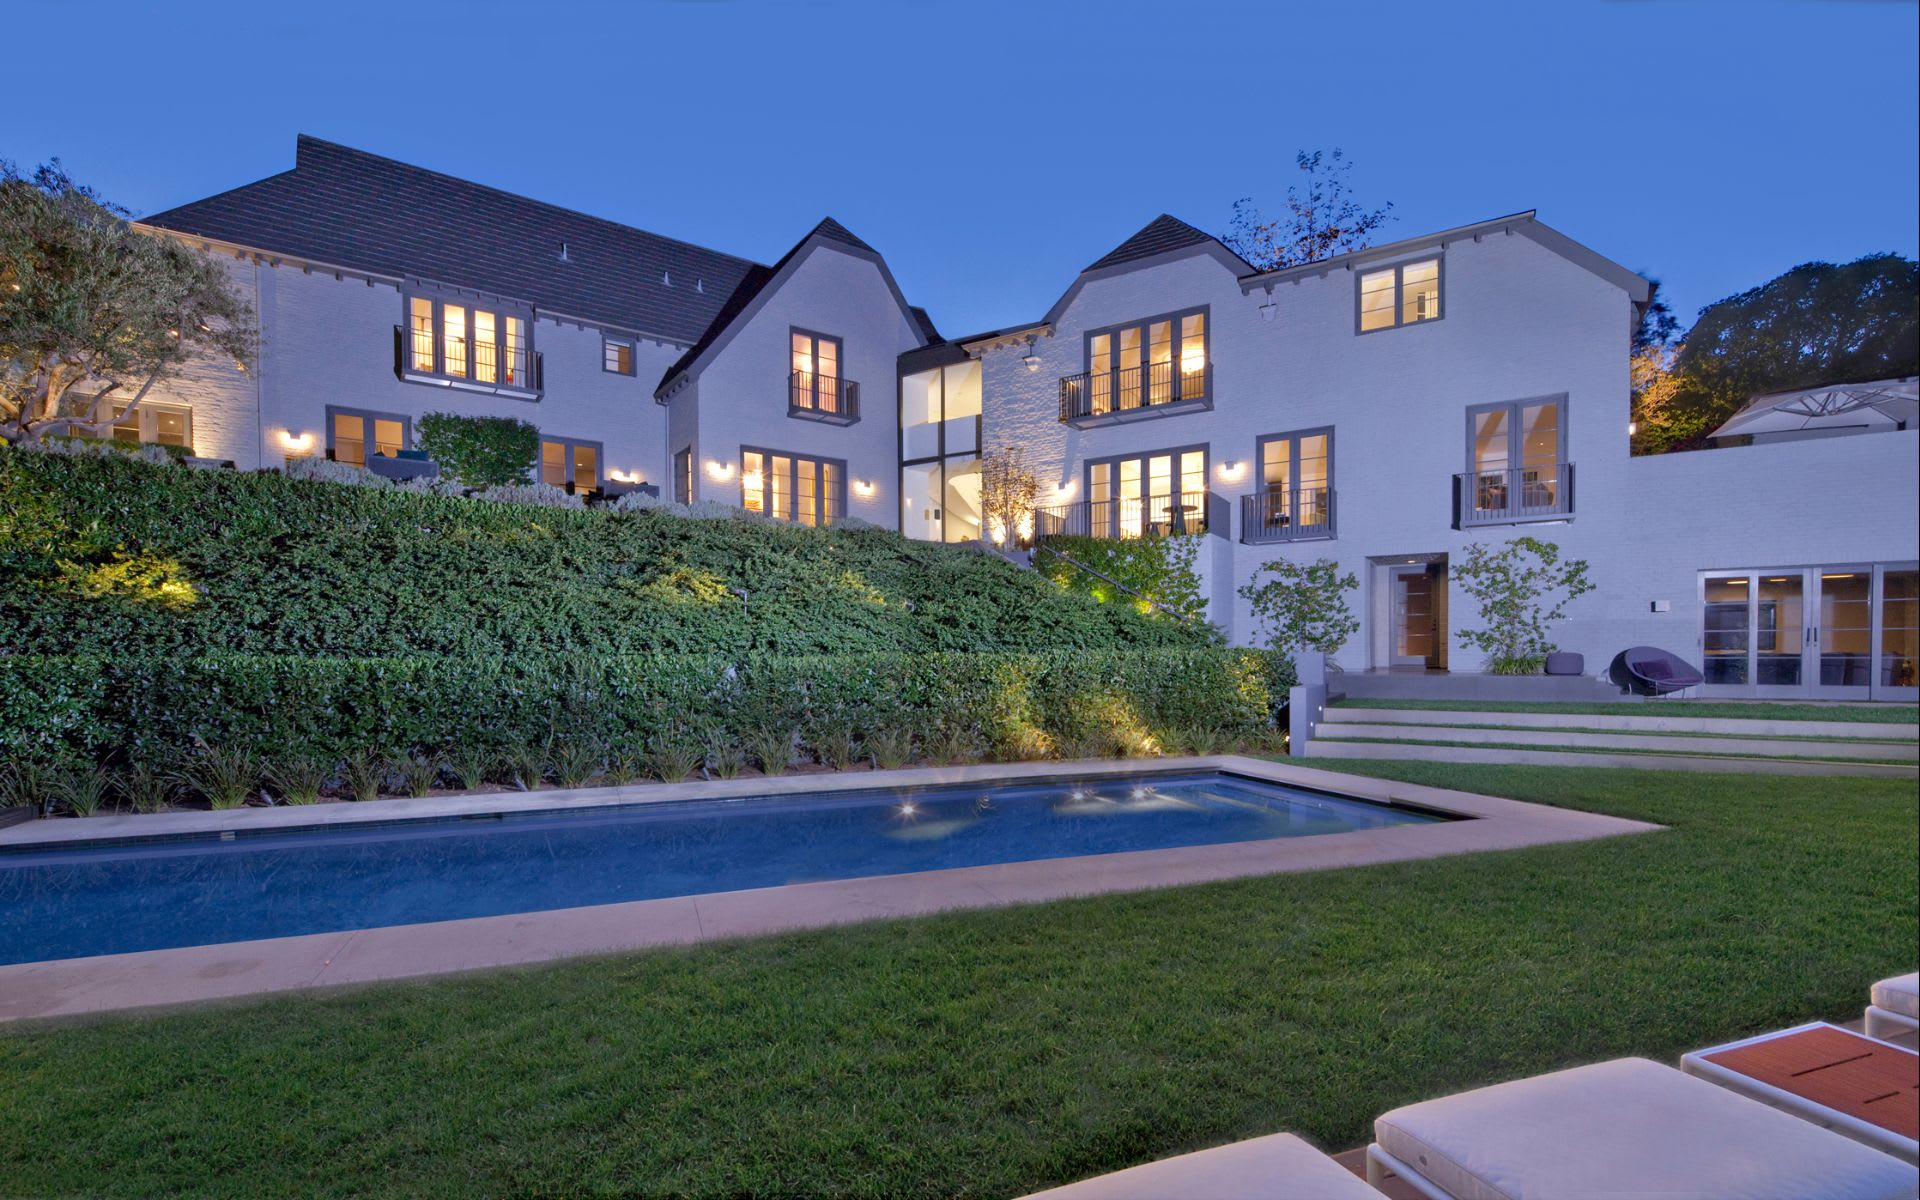 1181 angelo dr beverly hills ca 90210 realtorcom - HD 1920×1200